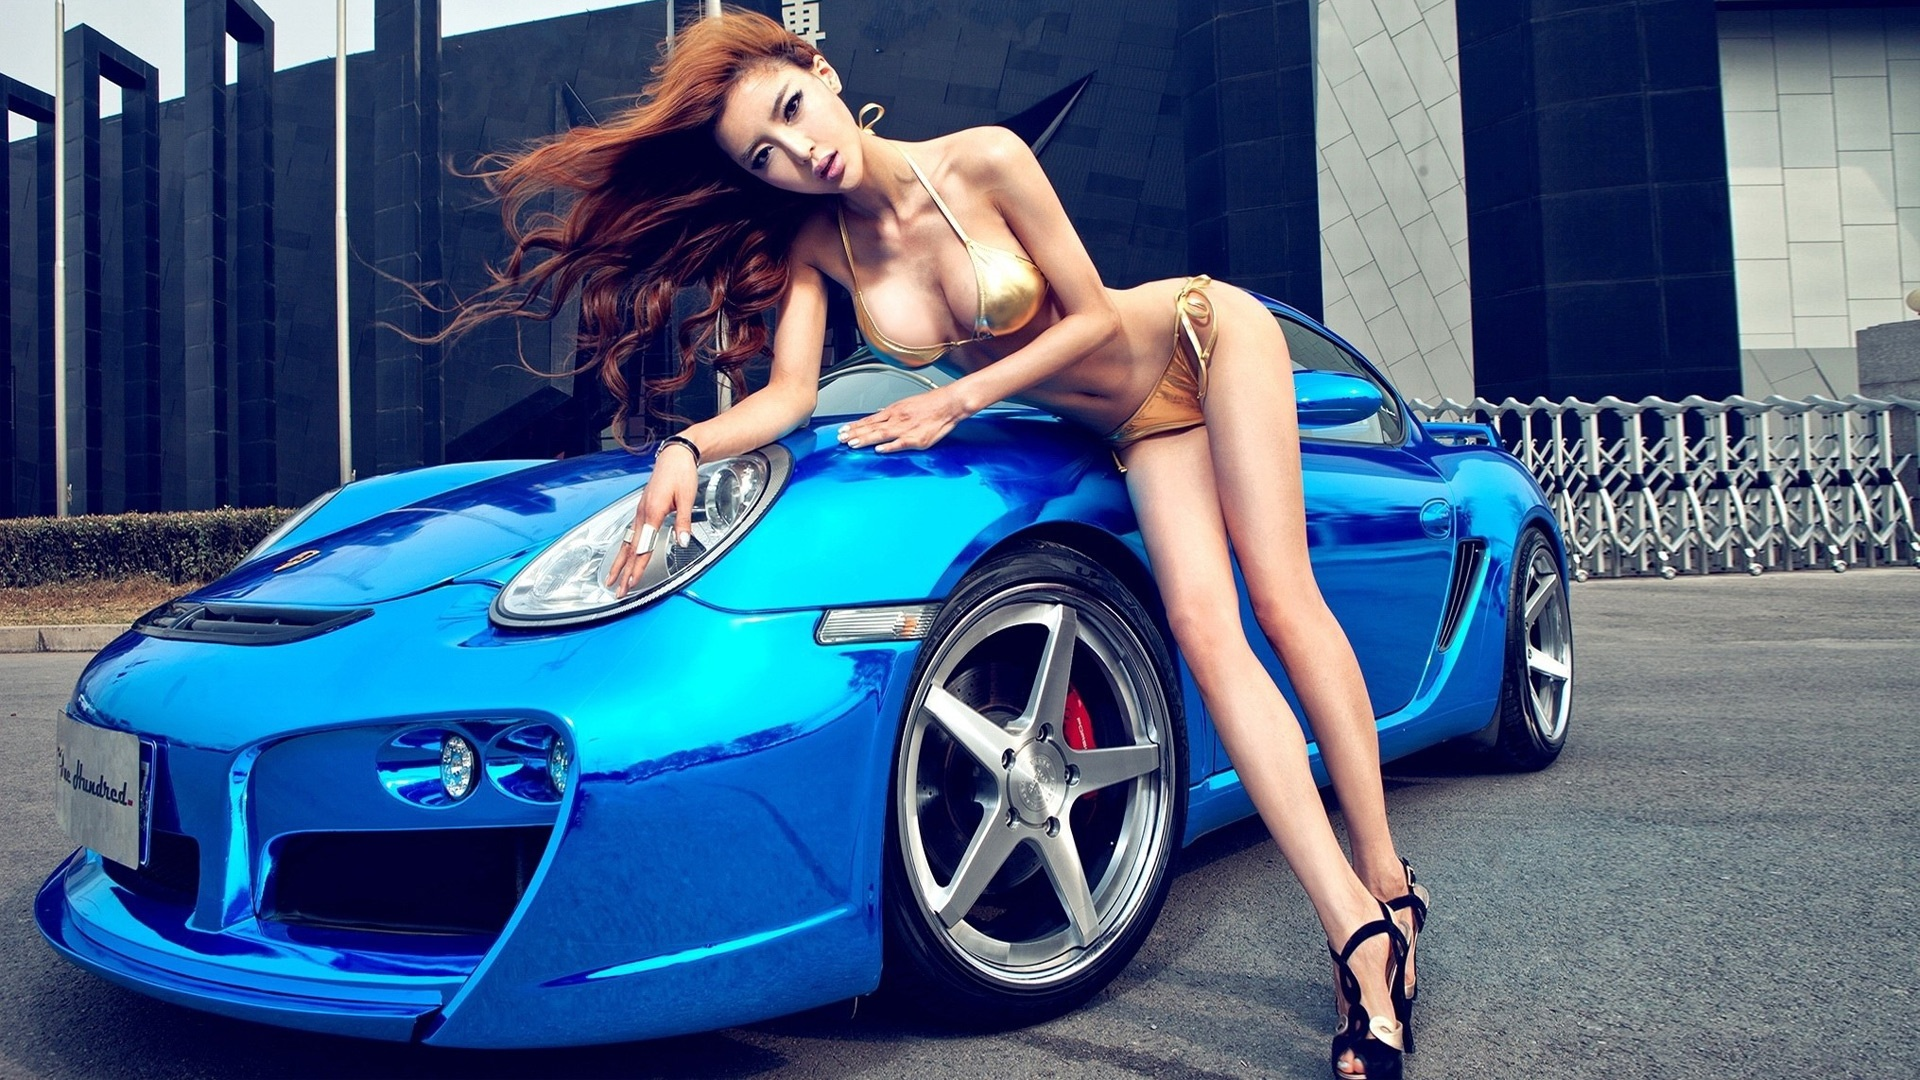 Busty anorexic asian beauty in bikinis and Porsche 911 ...